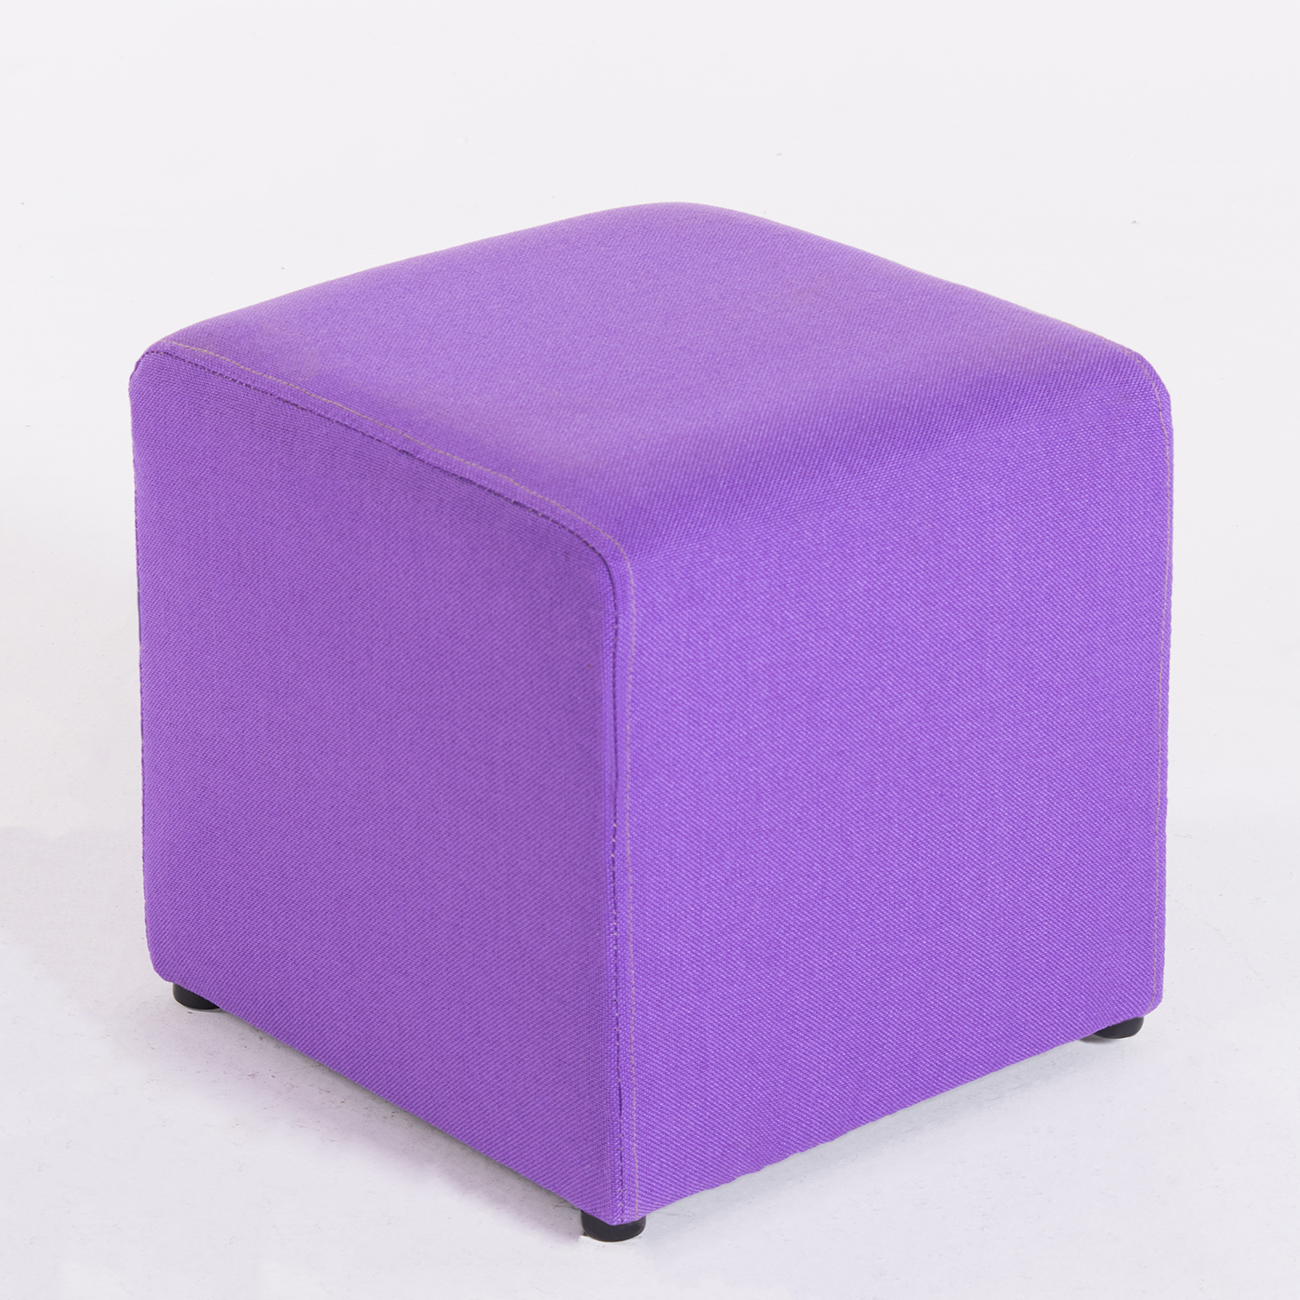 Incredible Details About Multi Function Small Ottoman Square Stool Seating Footstool Stool Green Purple Dailytribune Chair Design For Home Dailytribuneorg